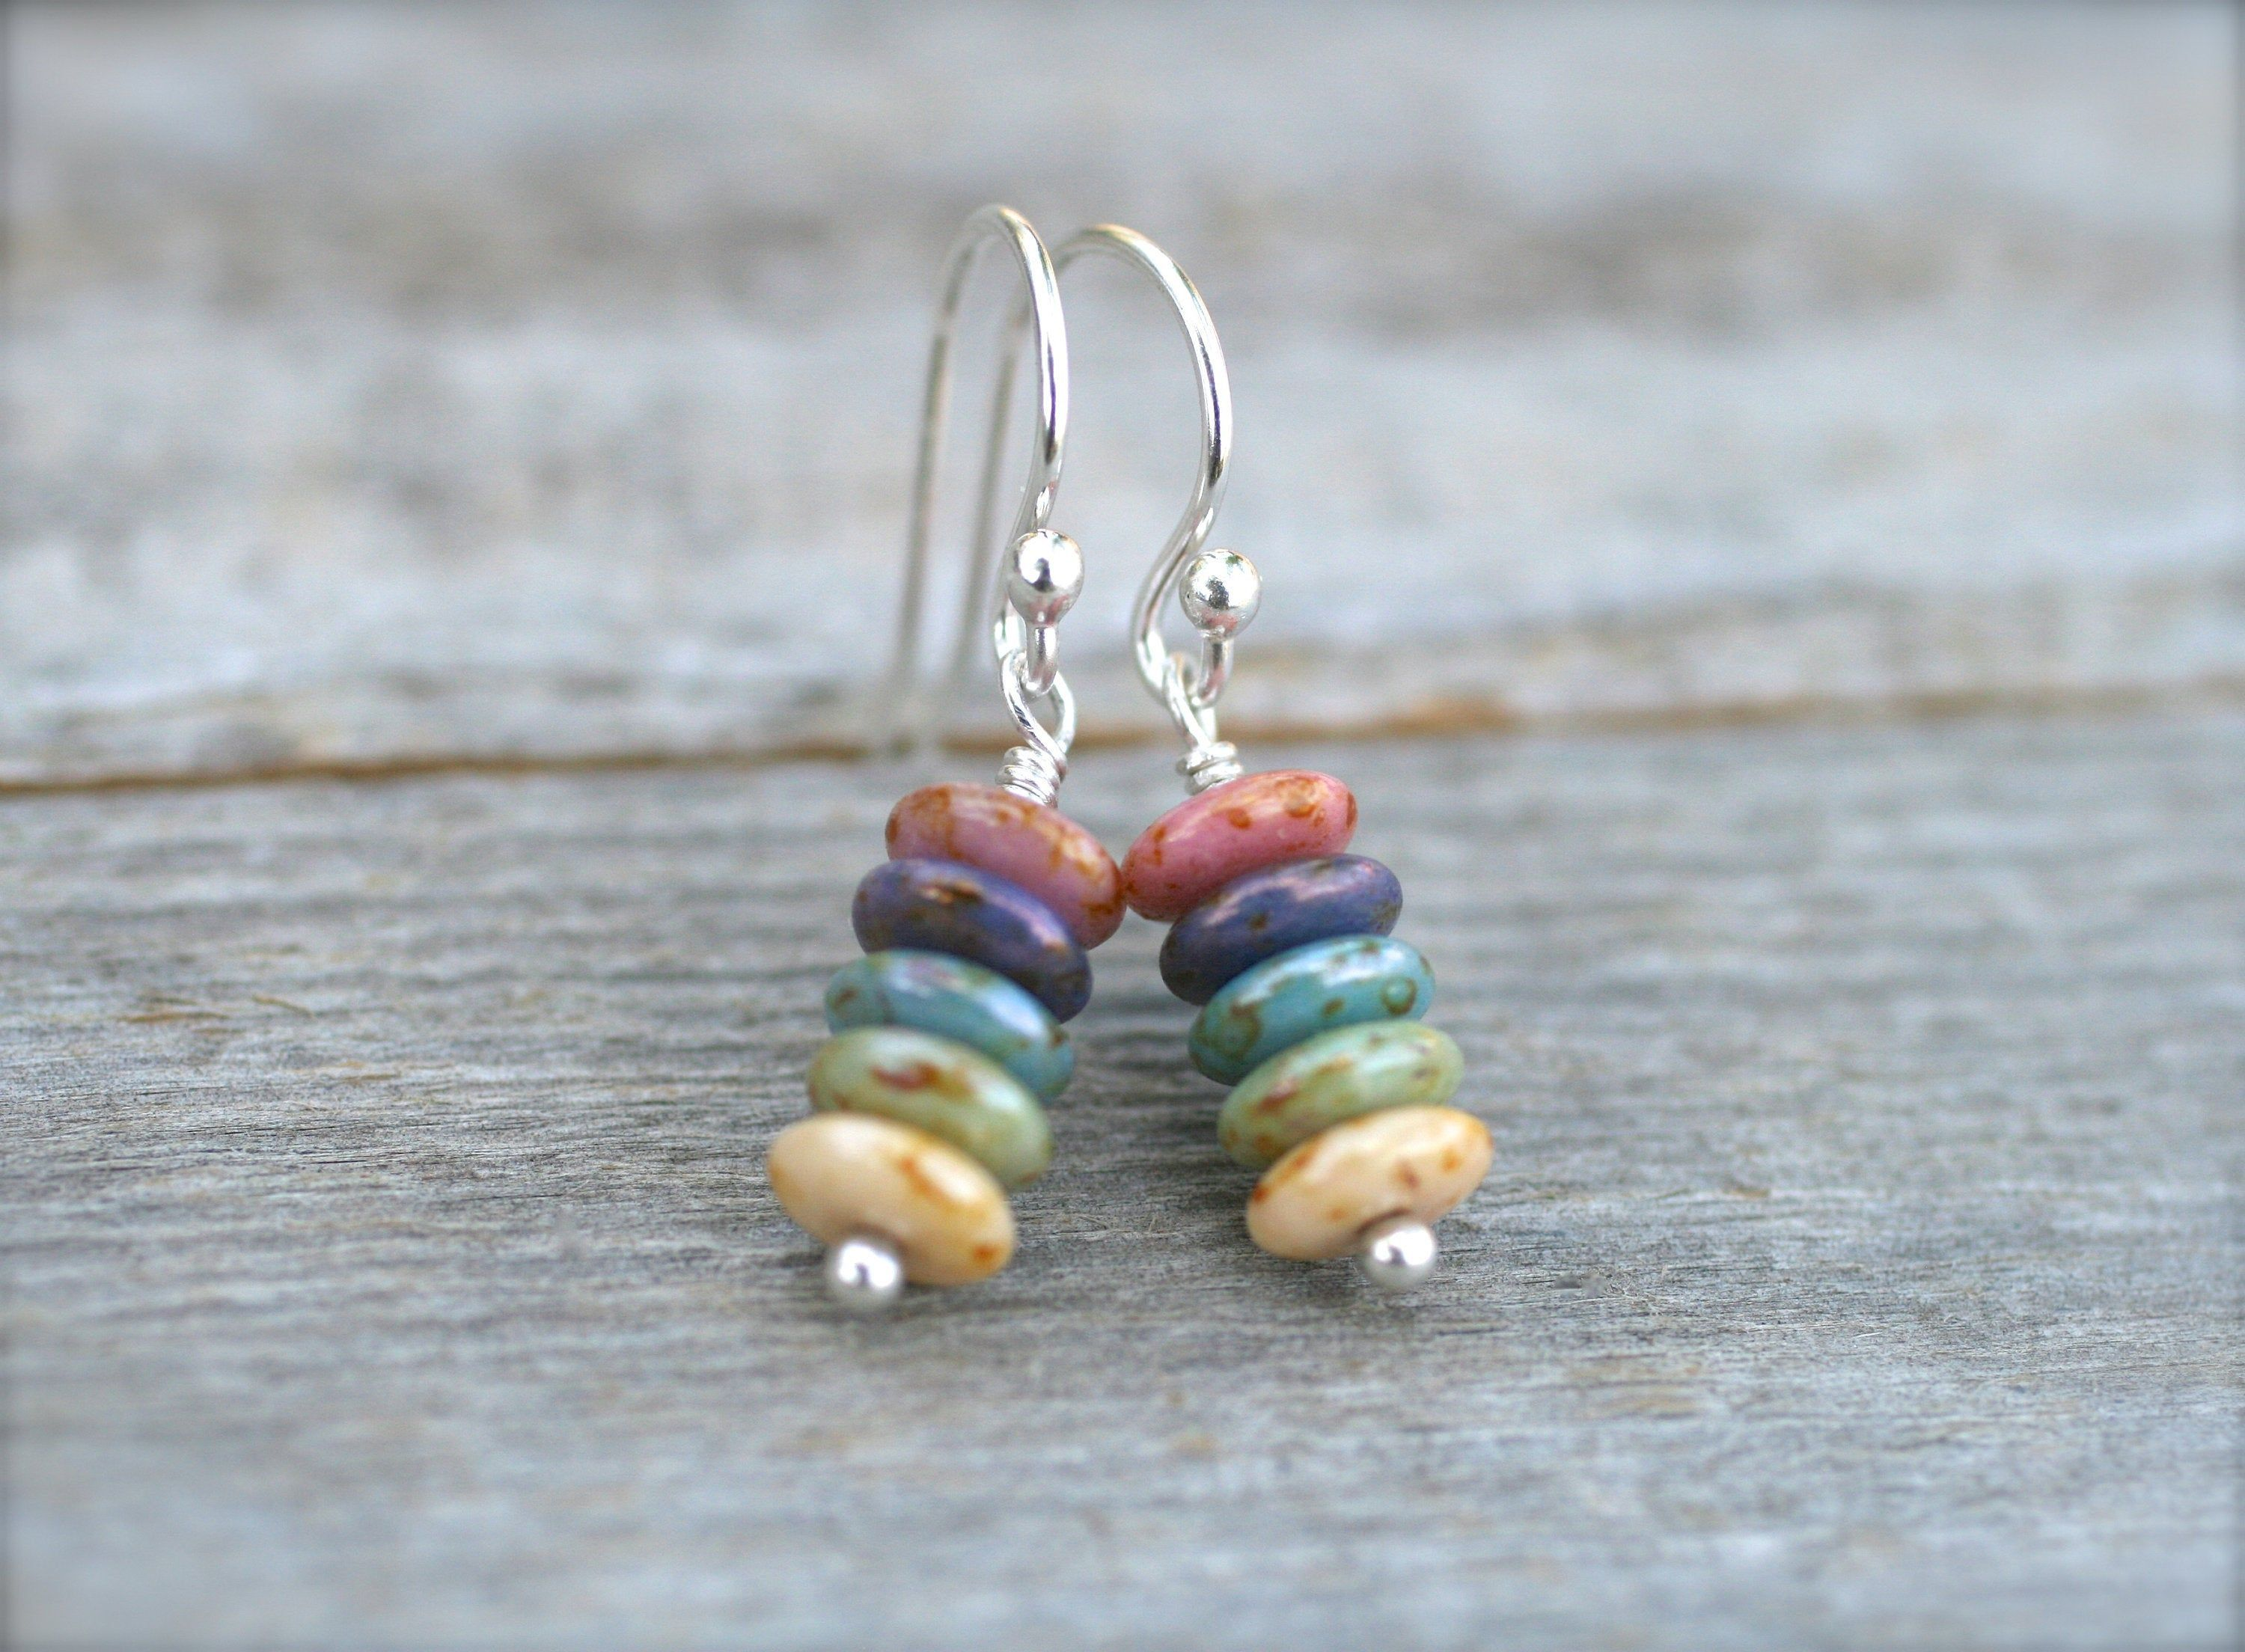 Unique Handmade Sterling Silver Earrings with Multicolored Czech Glass Beads